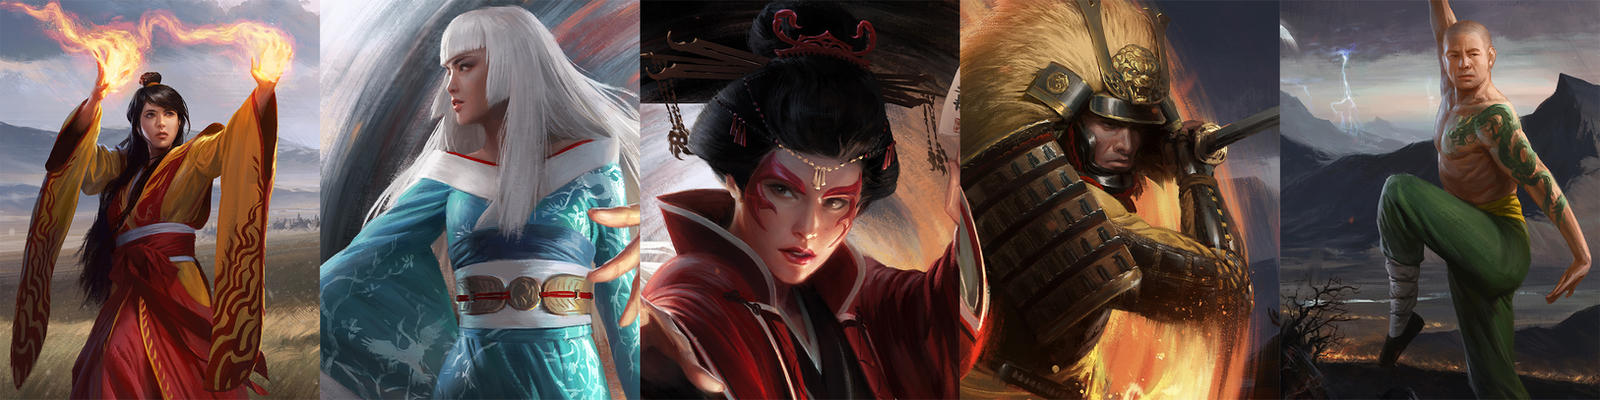 Legend Of The Five Rings LCG Box Art(Close Ups) by wraithdt